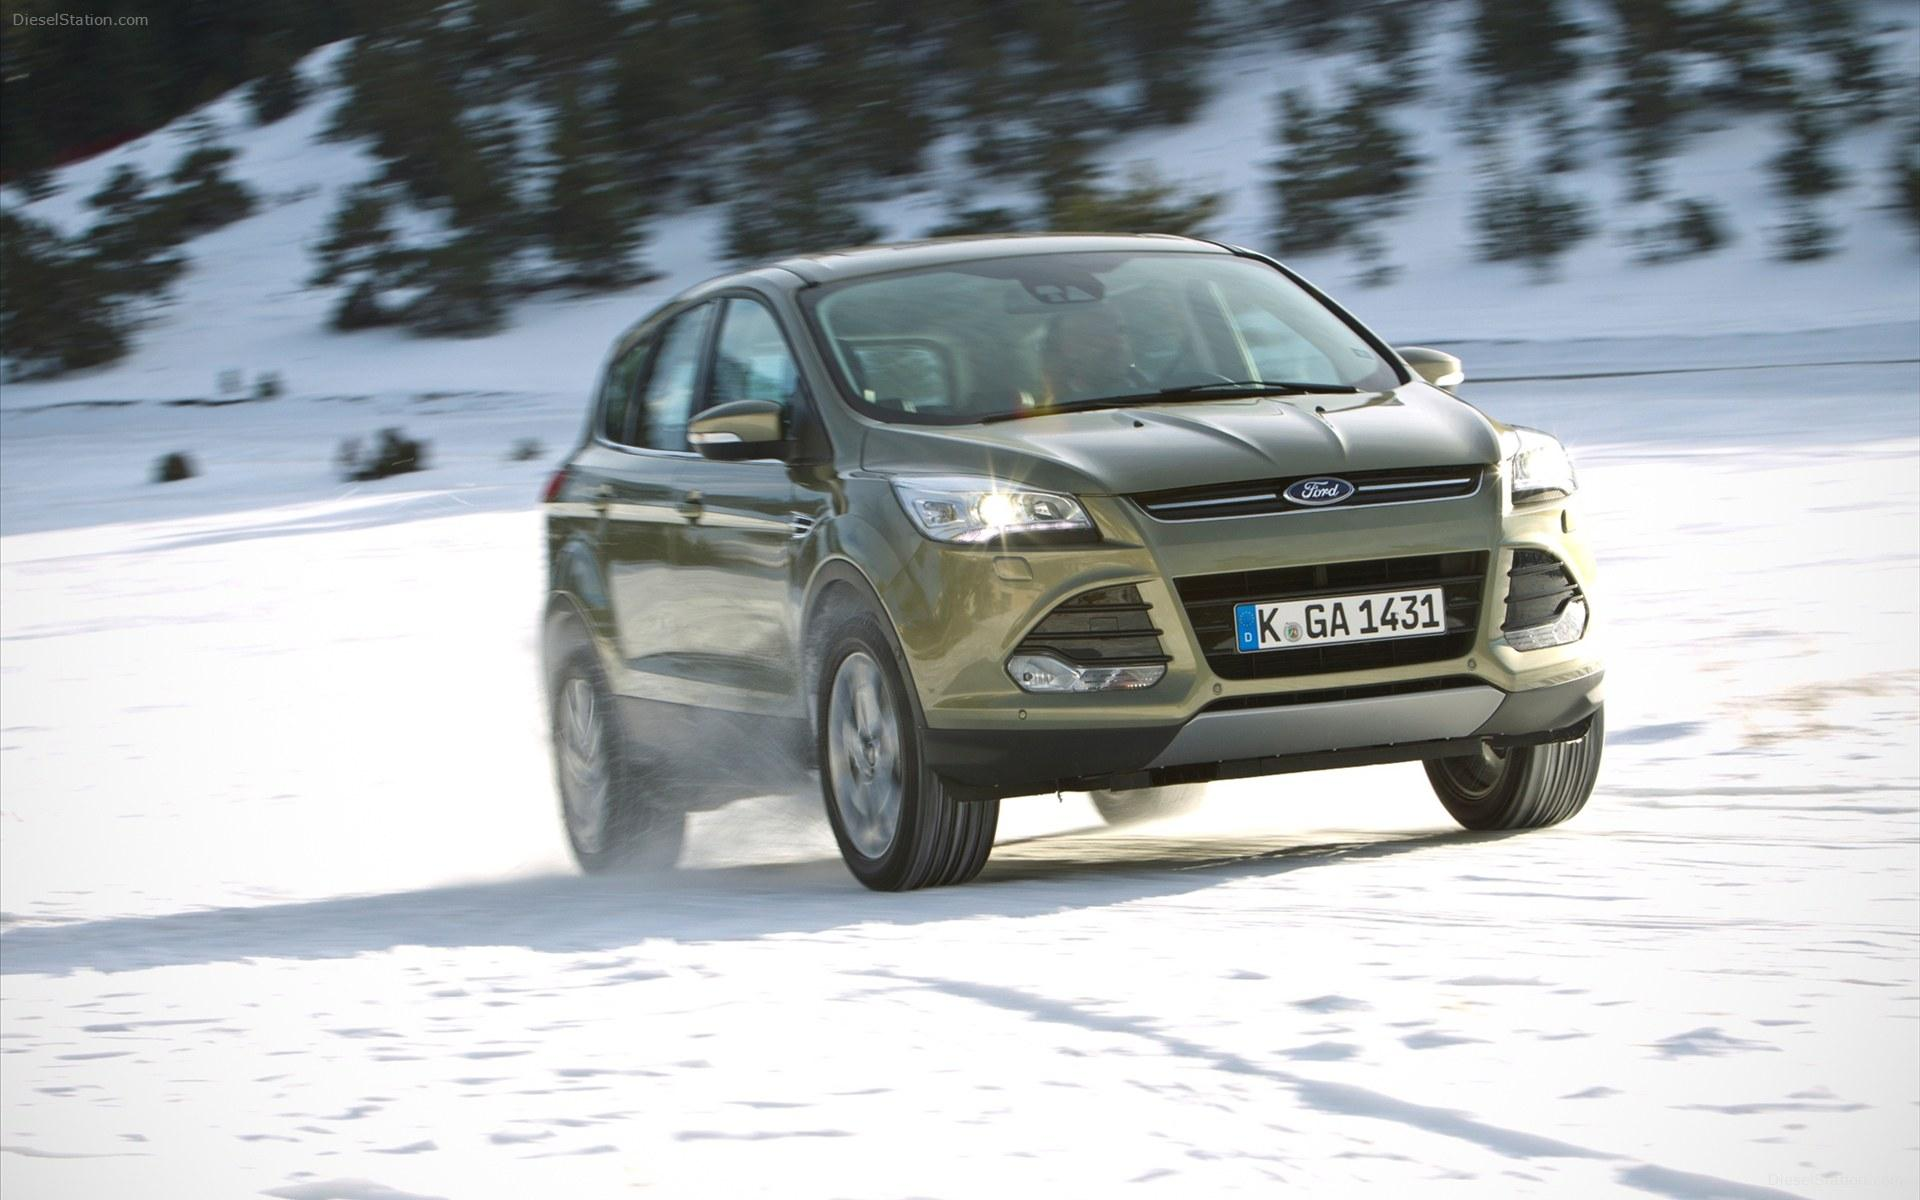 Ford Kuga 2013 Widescreen Exotic Car Wallpapers #02 of 10 : Diesel ...